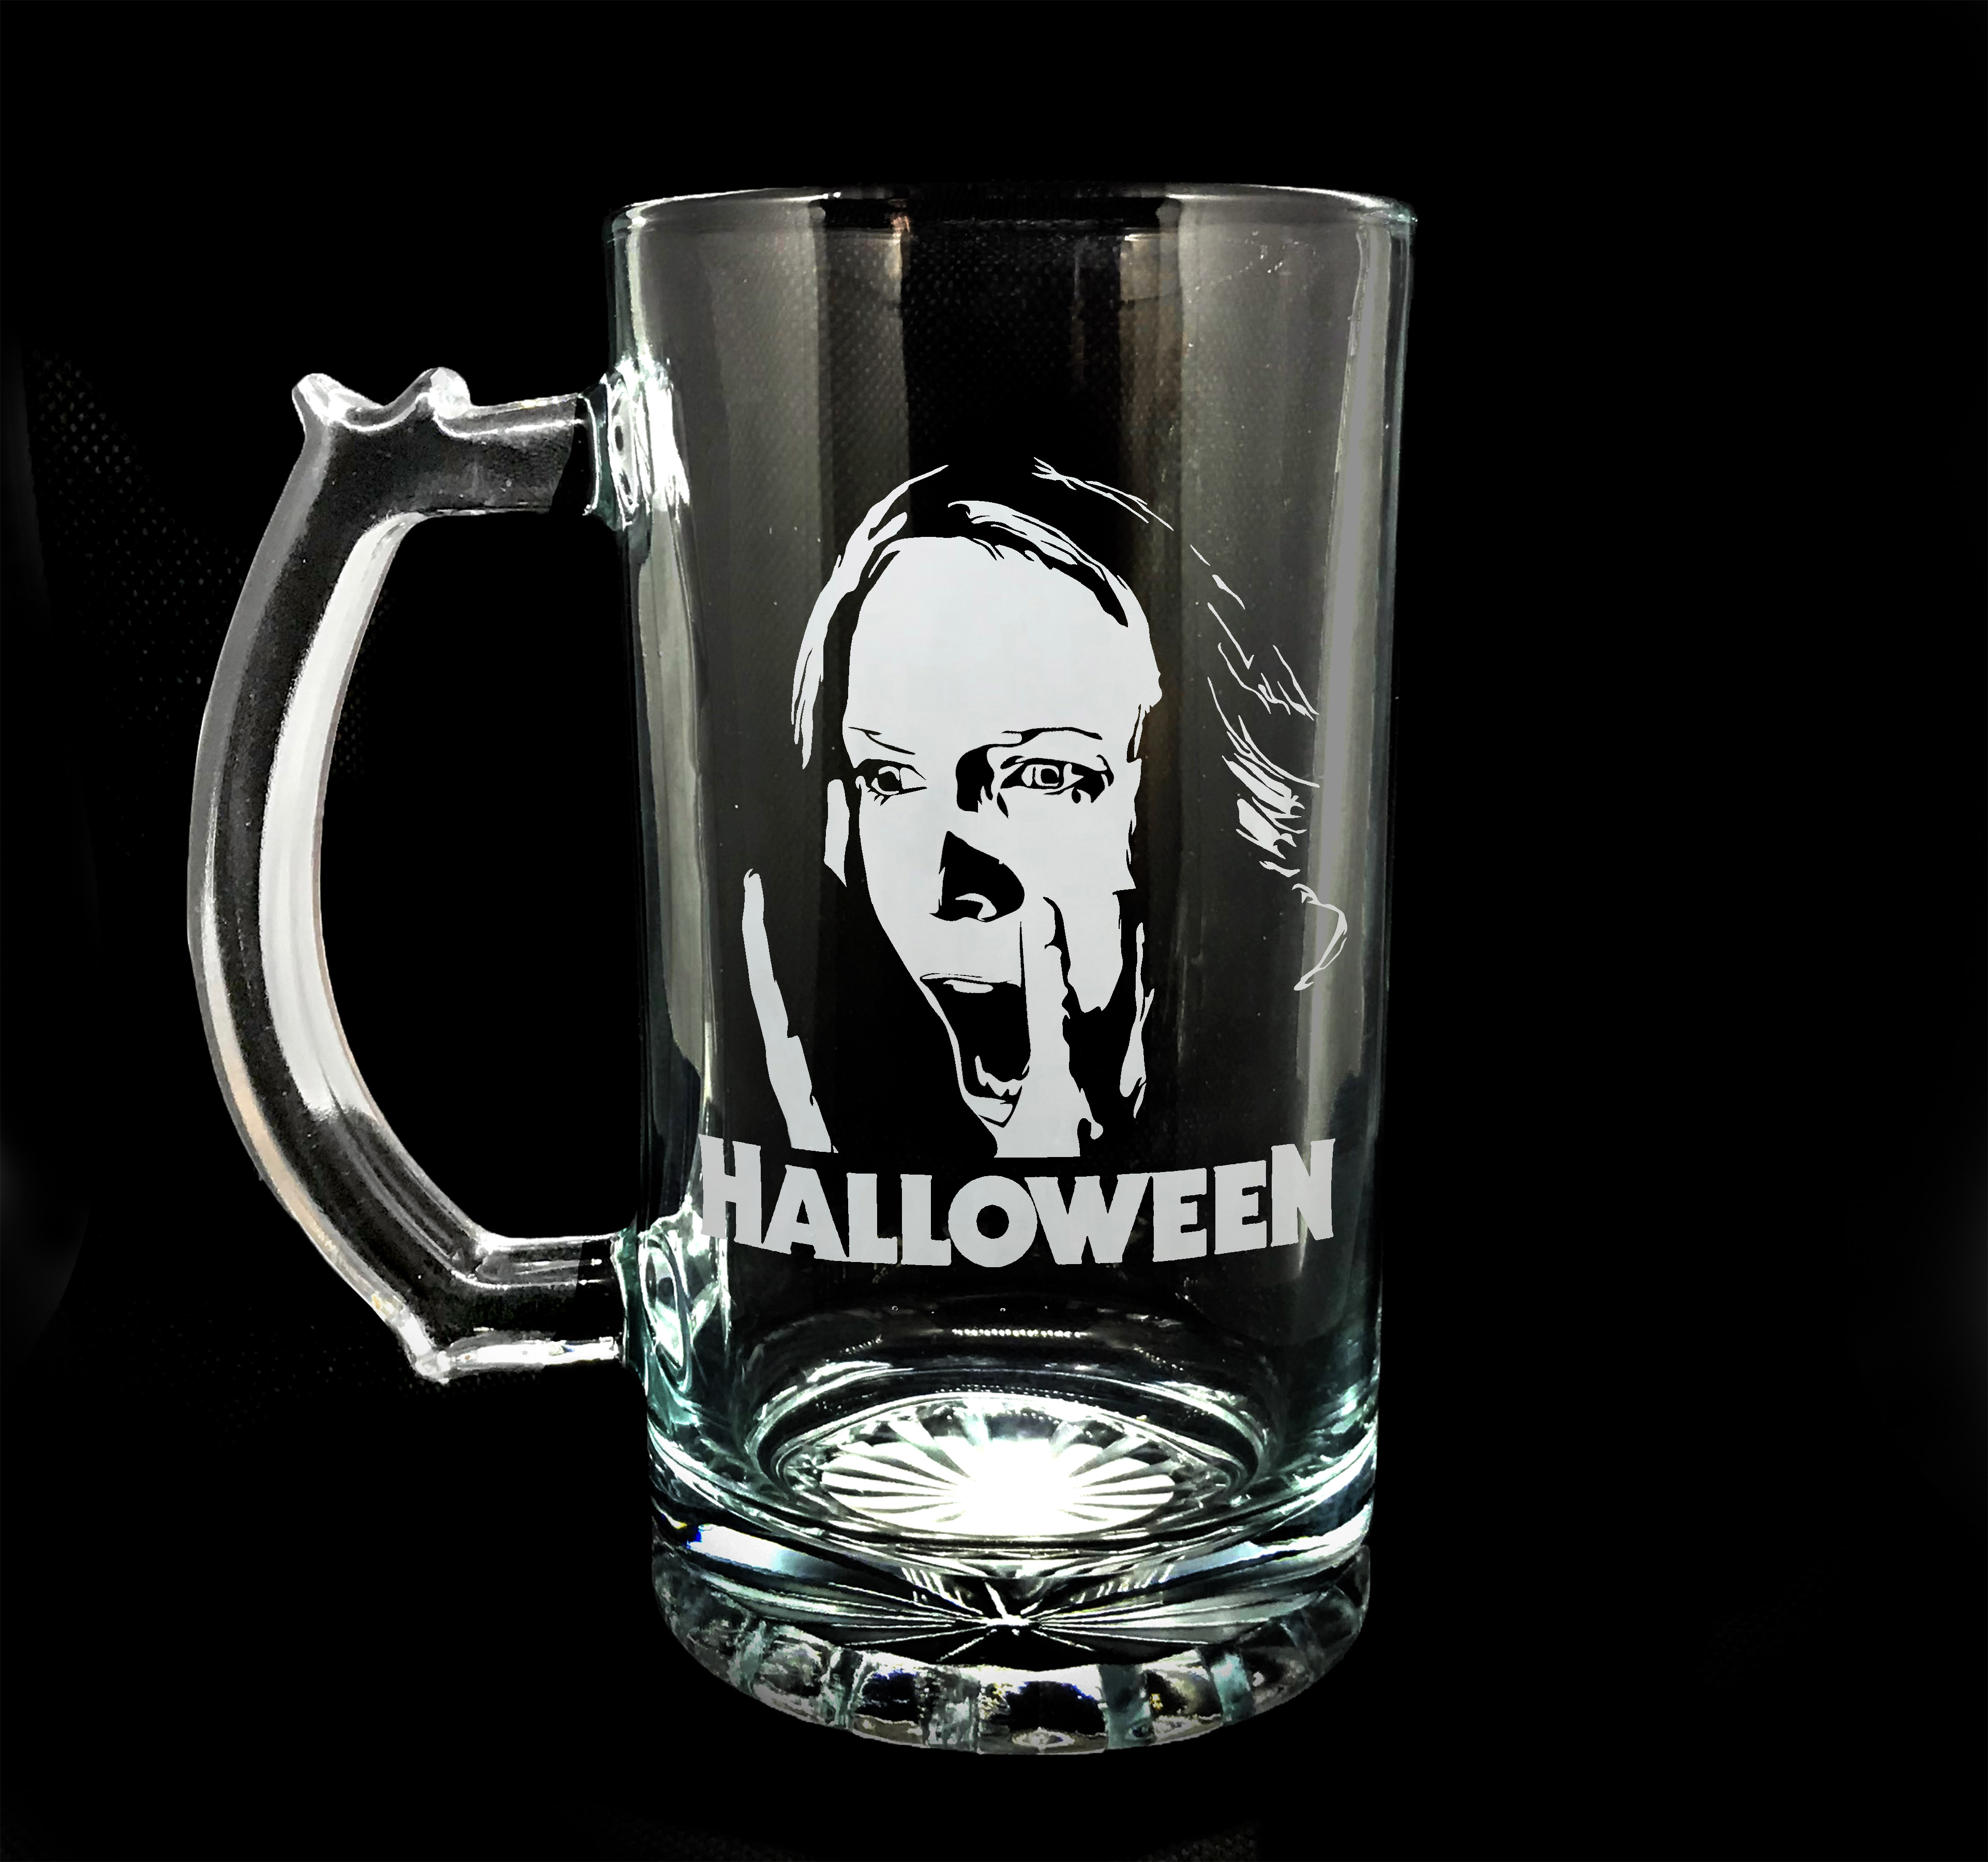 16 Oz Halloween Micheal Myers Glass Beer Mug Stein Cup Cerveza Copa Horror Sold By Chivo Grafica On Storenvy